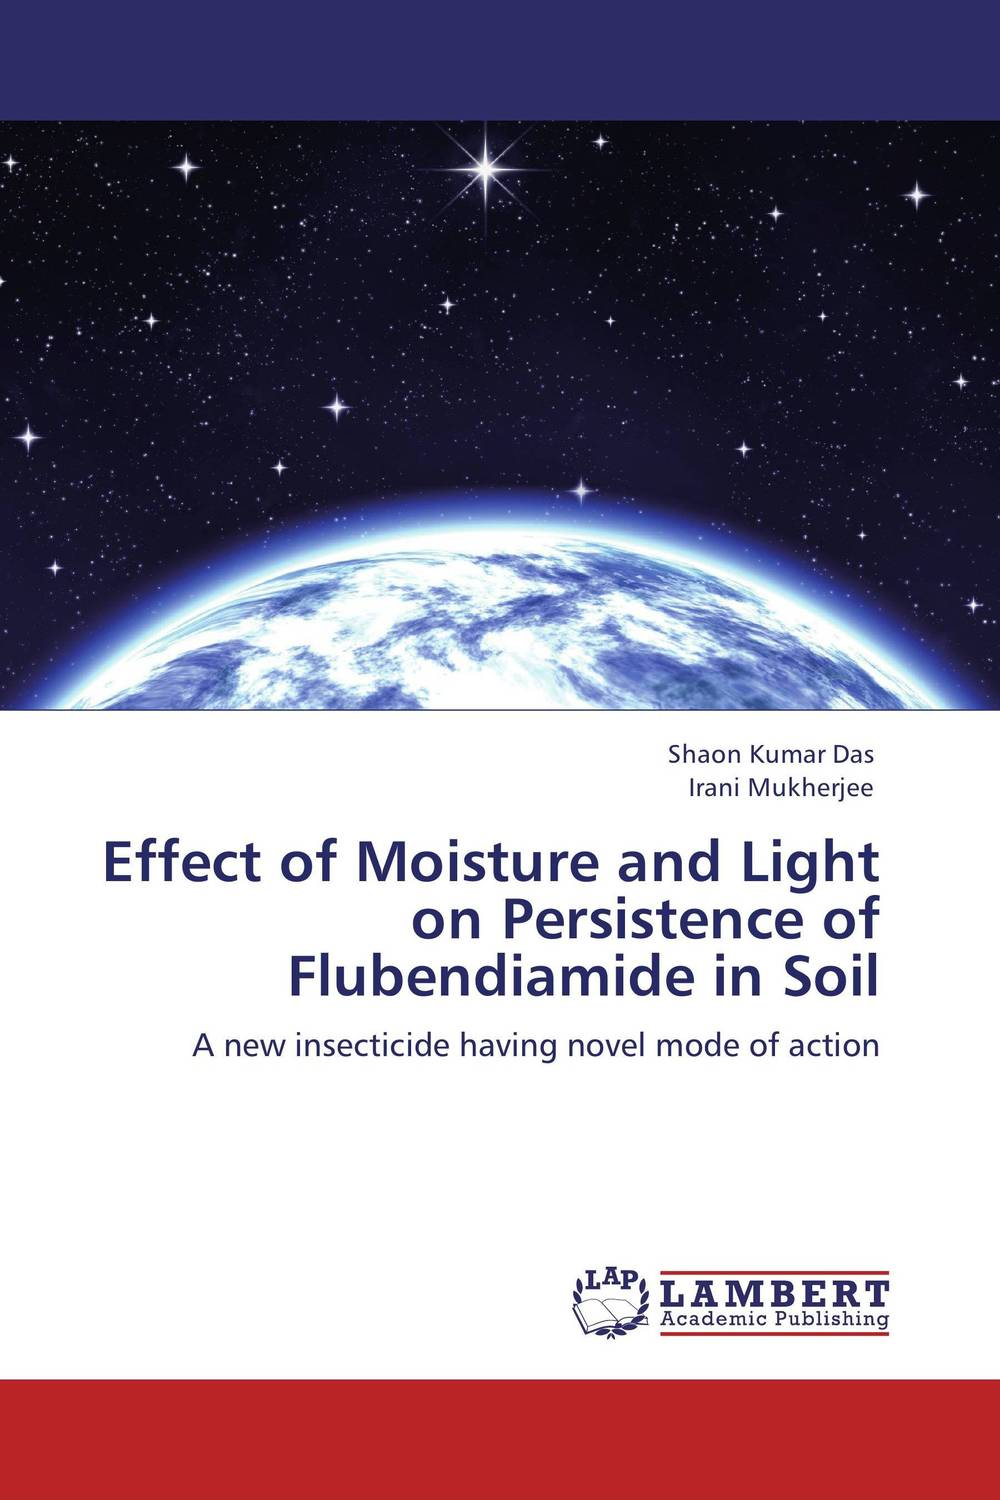 Effect of Moisture and Light on Persistence of Flubendiamide in Soil t1 spacecam